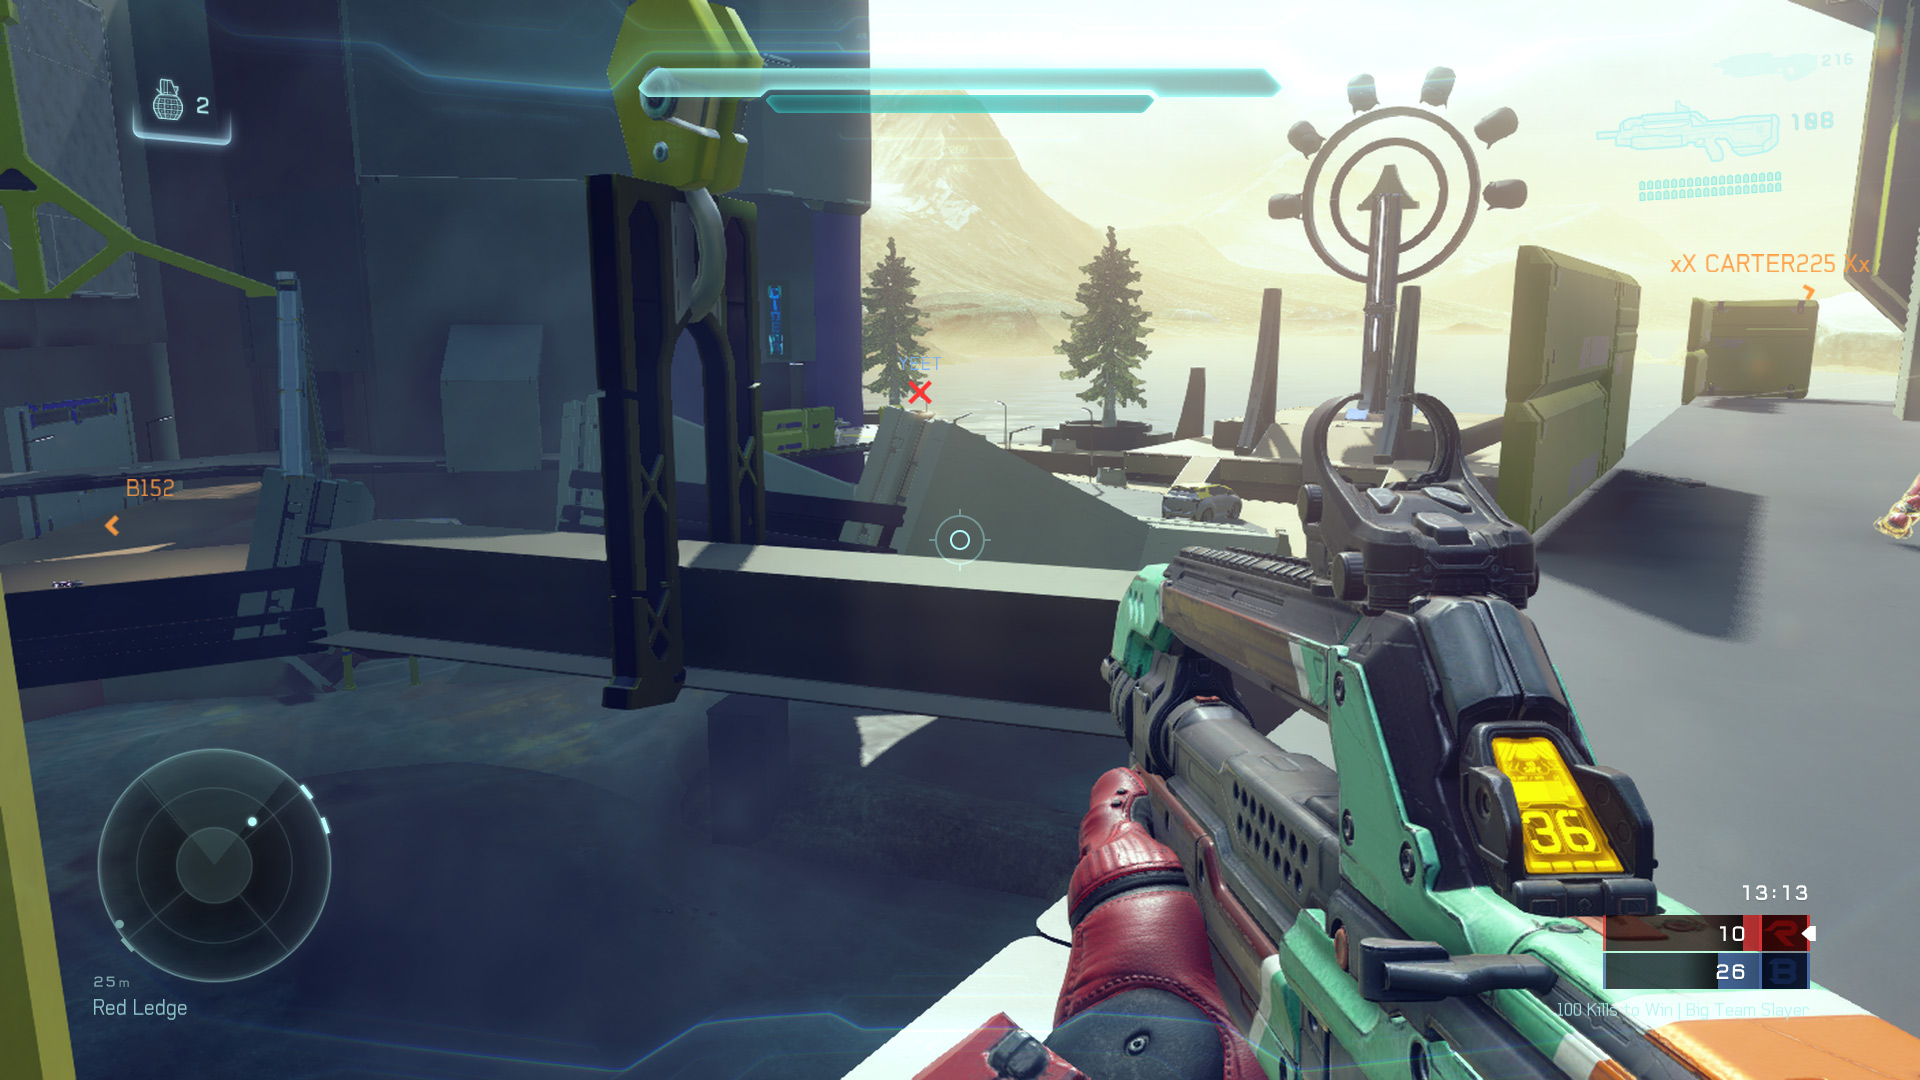 Halo 5: Guardians DLC was Disappointing